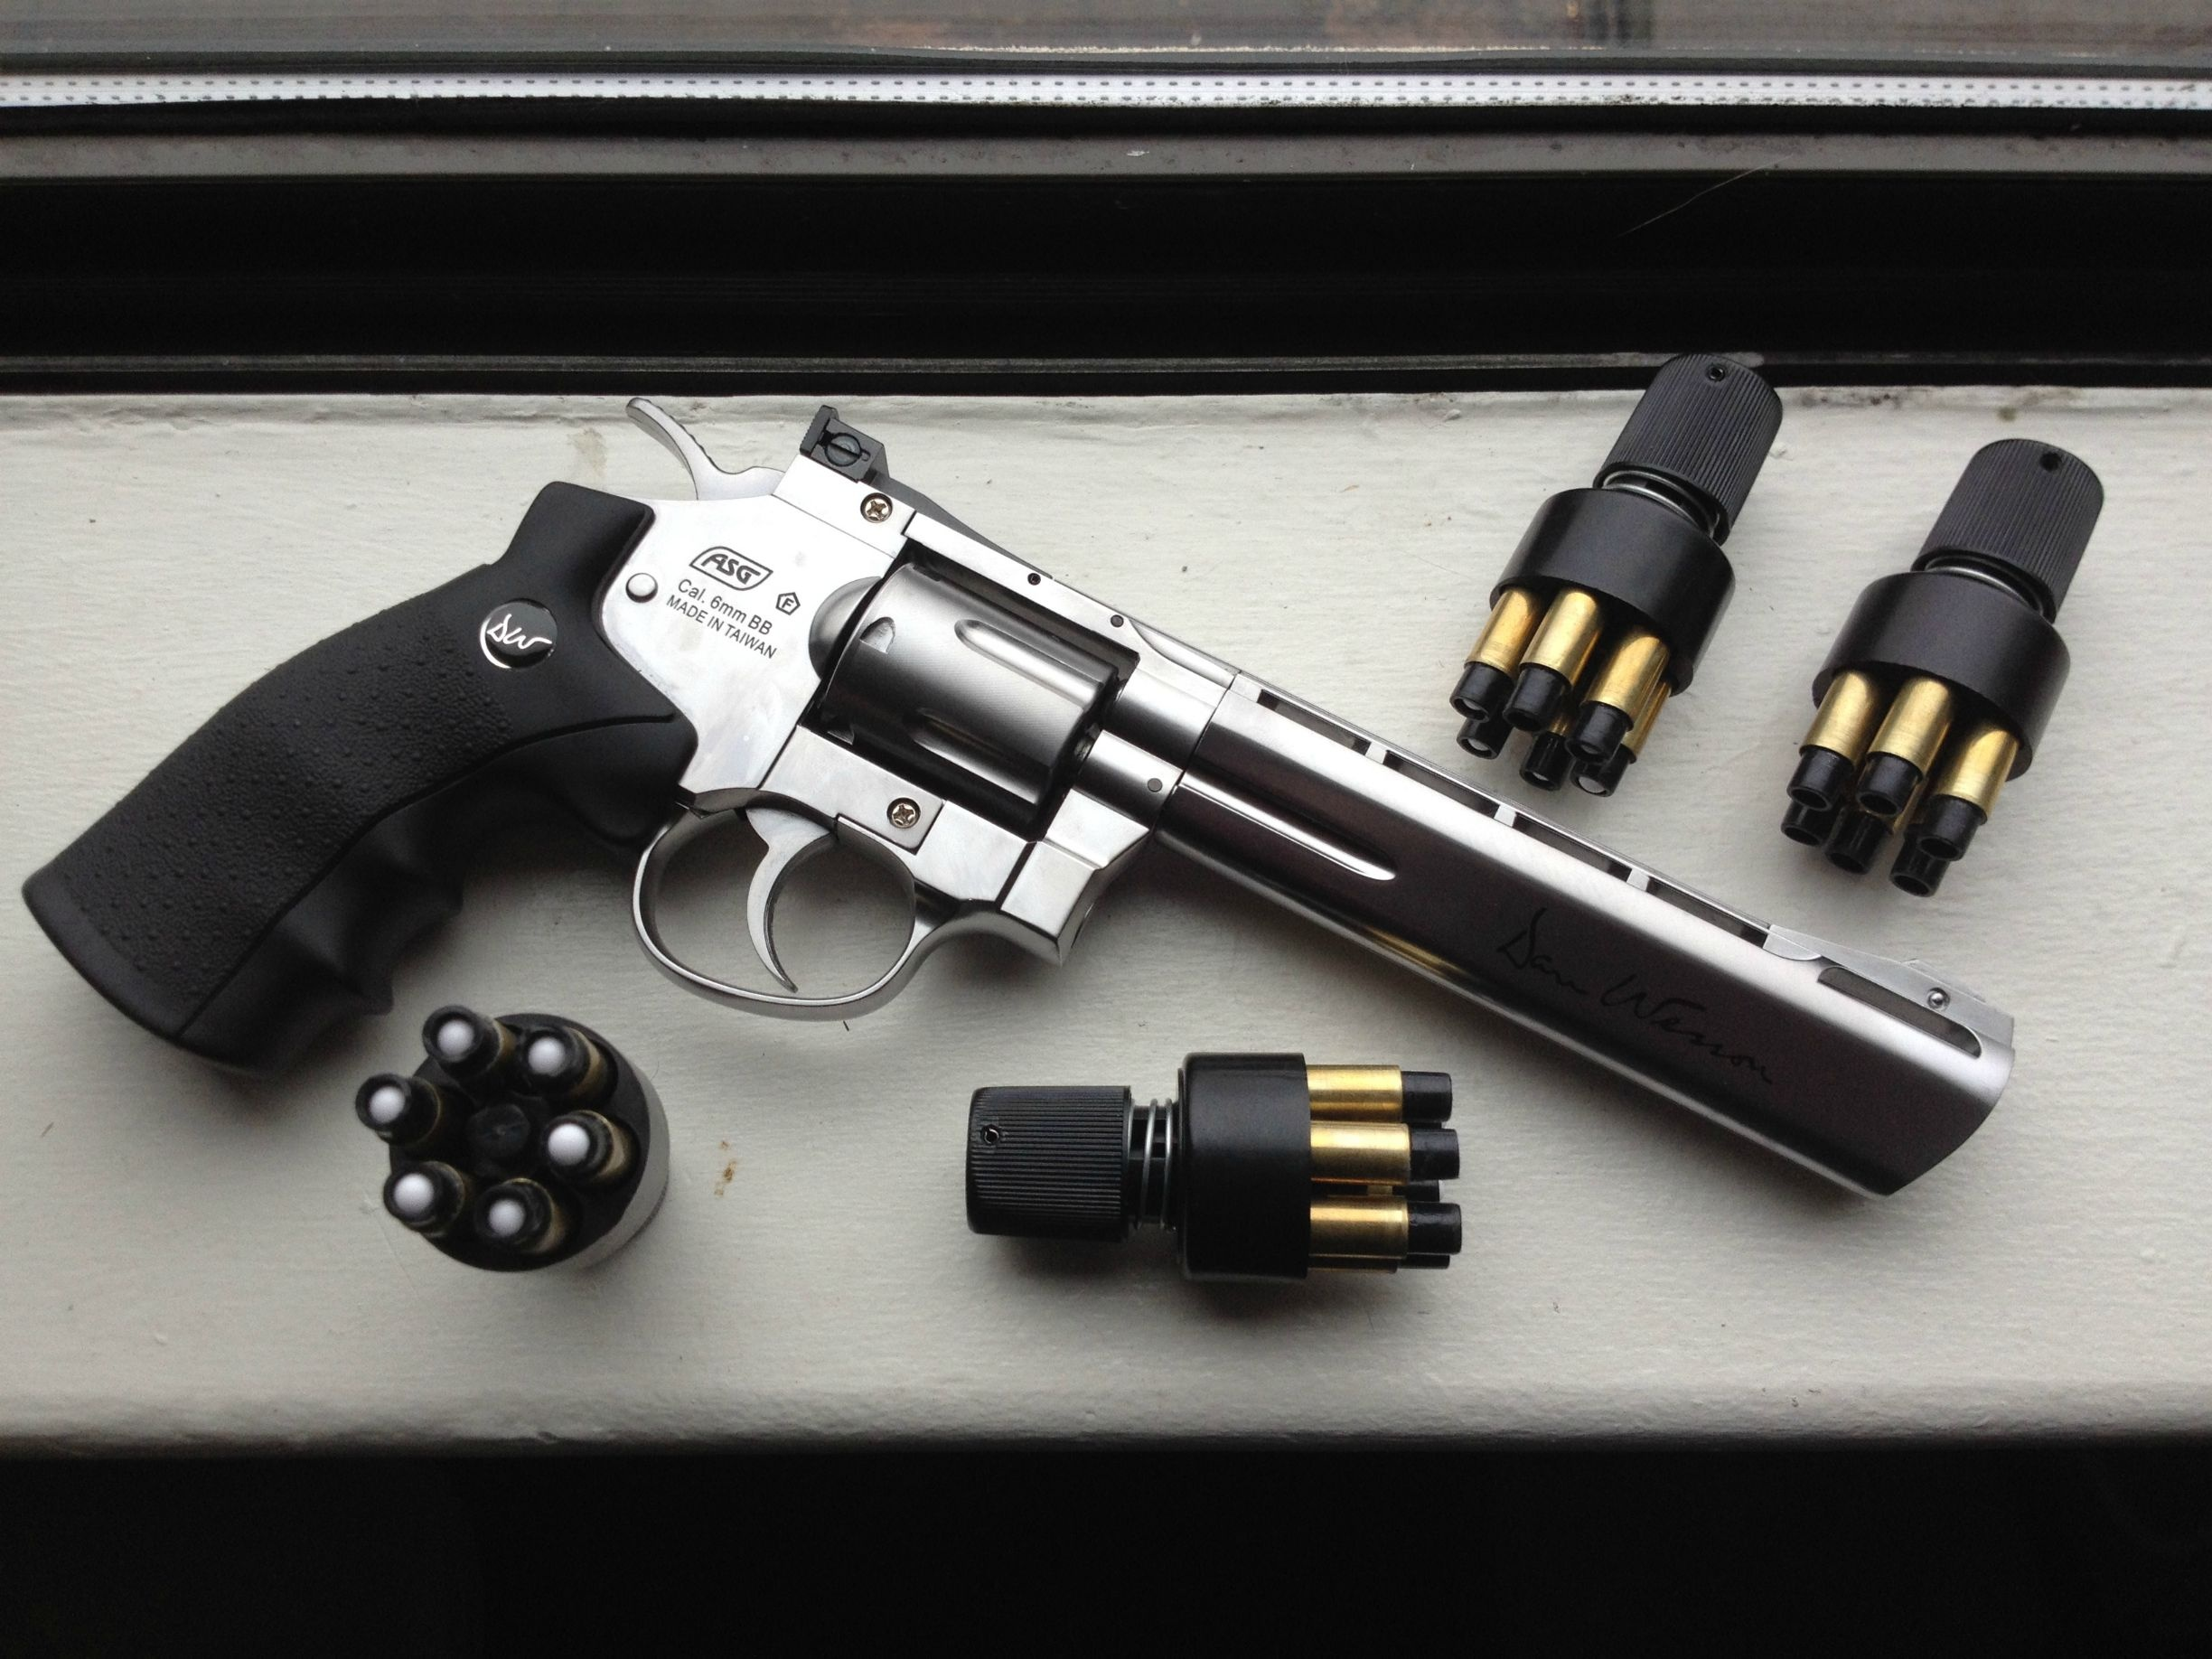 How practical are HPA revolvers for CQB airsoft guns? - Quora